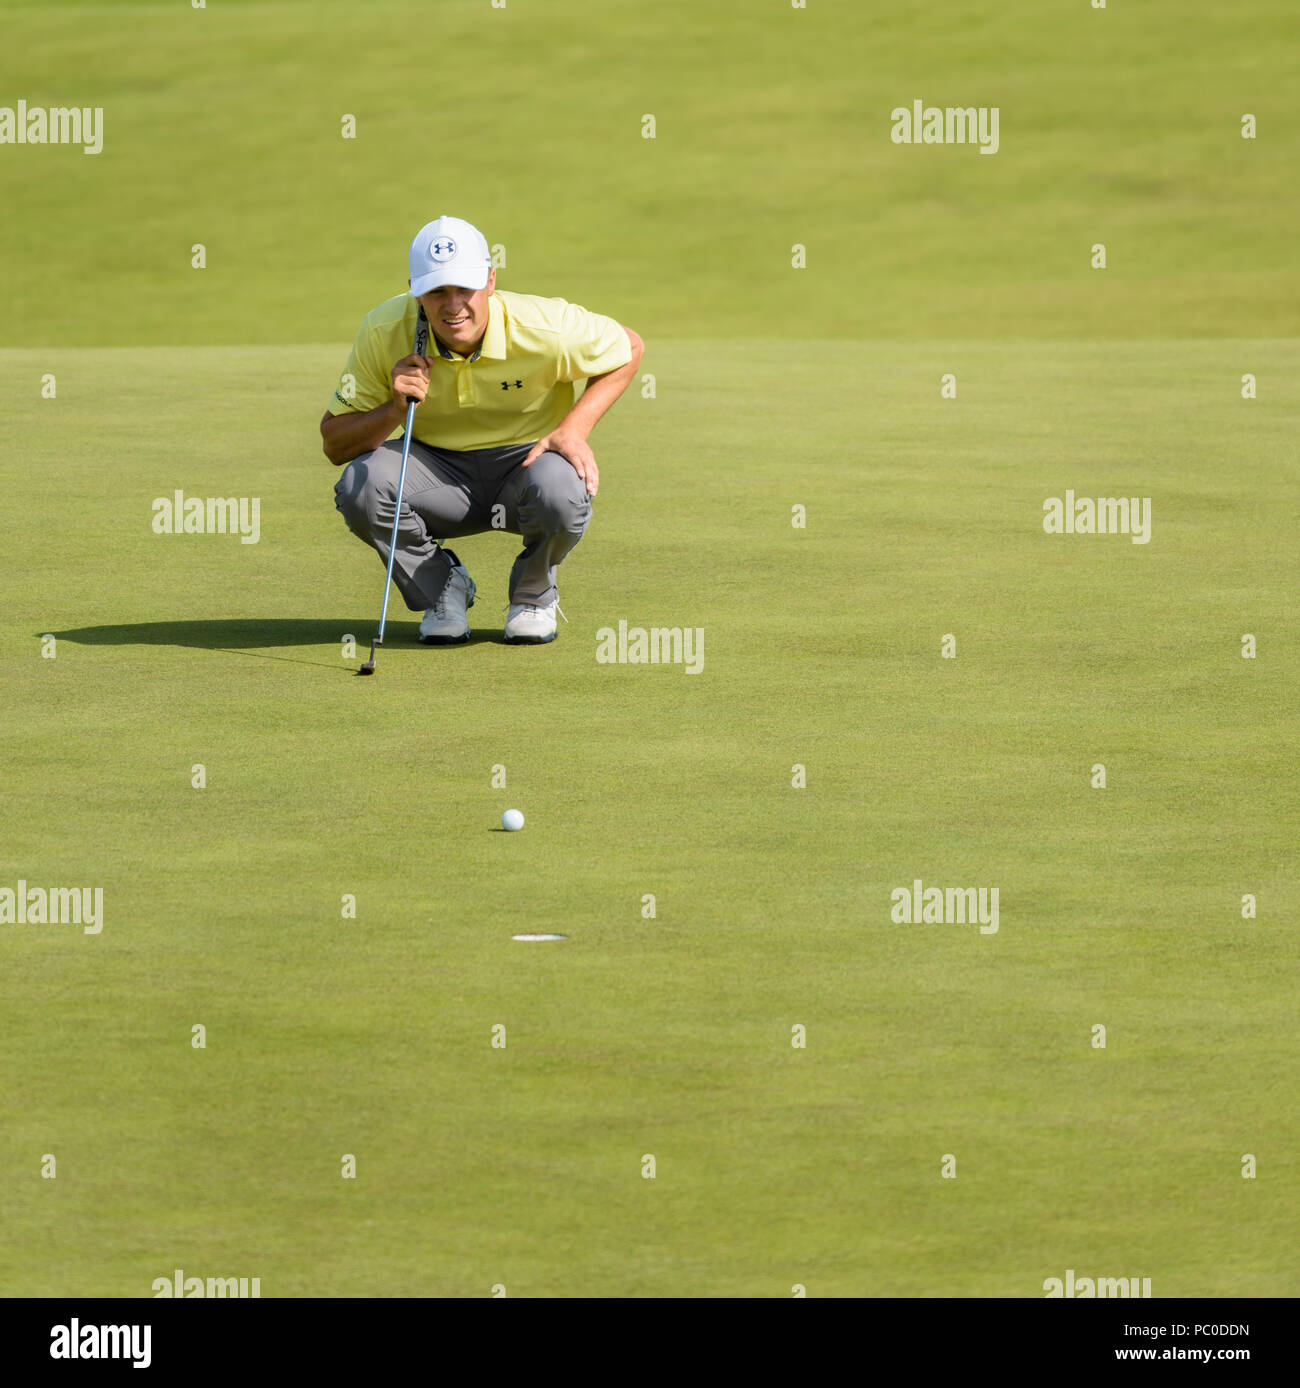 Jordan Spieth showing focus and concentration in lining up a putt on a green at Royal Birkdale, Southport, during a practice day at The Open in 2017 - Stock Image